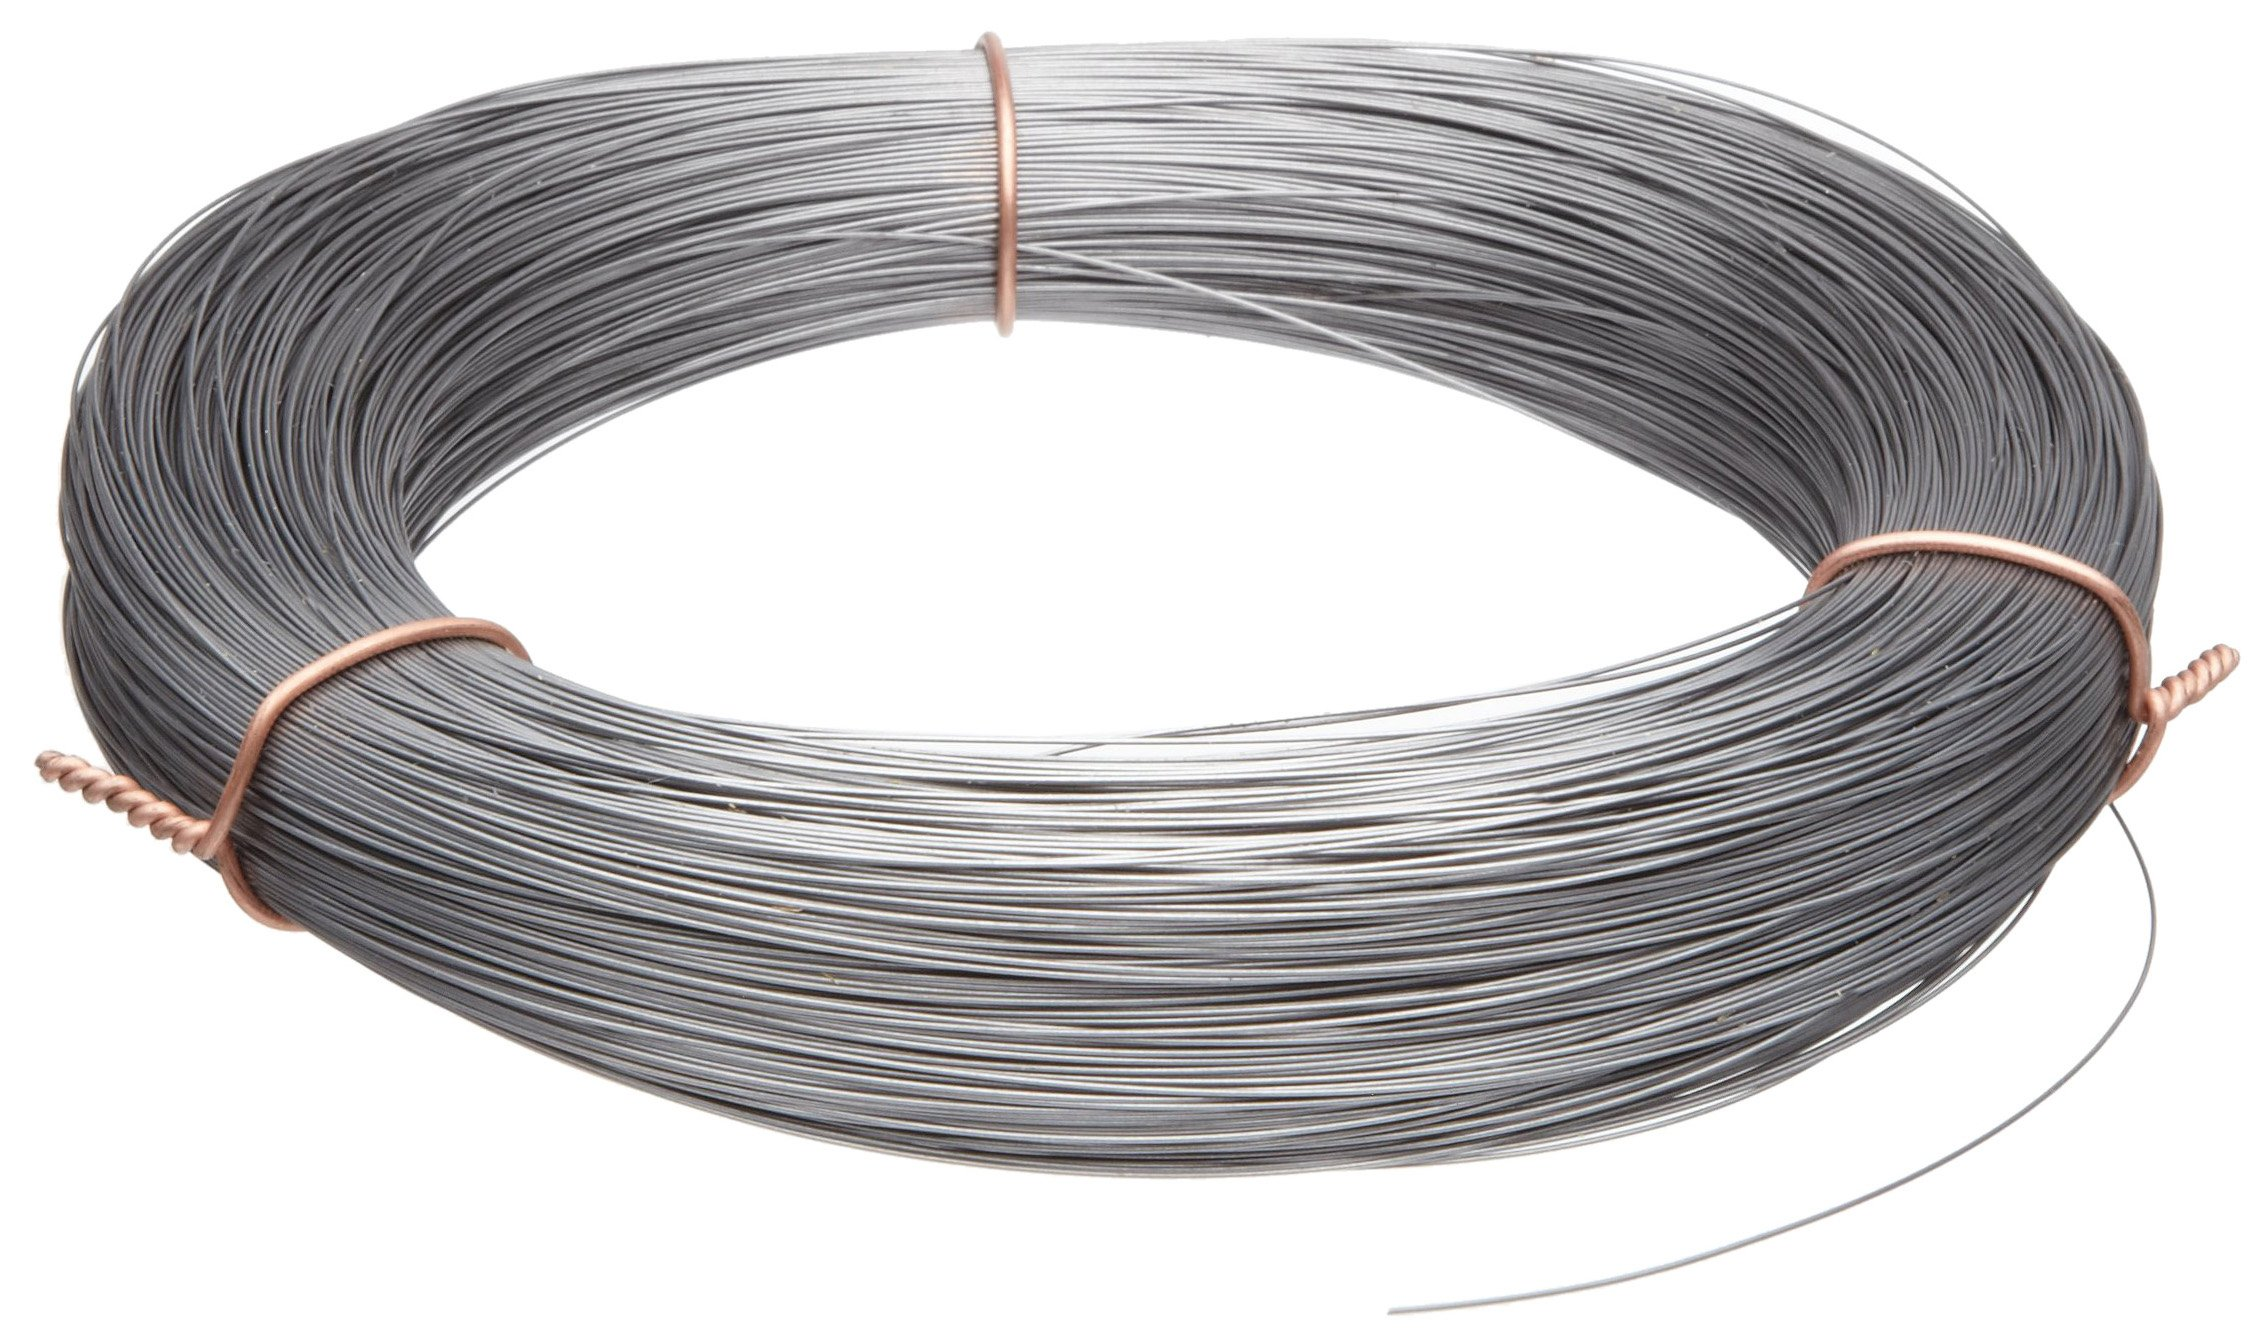 High Carbon Steel Wire, Mill Finish #2B (Smooth) Finish, Grade #2B Smooth, Full Hard Temper, Meets ASTM A228 Specifications, 0.006'' Diameter, 10404' Length, Precision by Small Parts